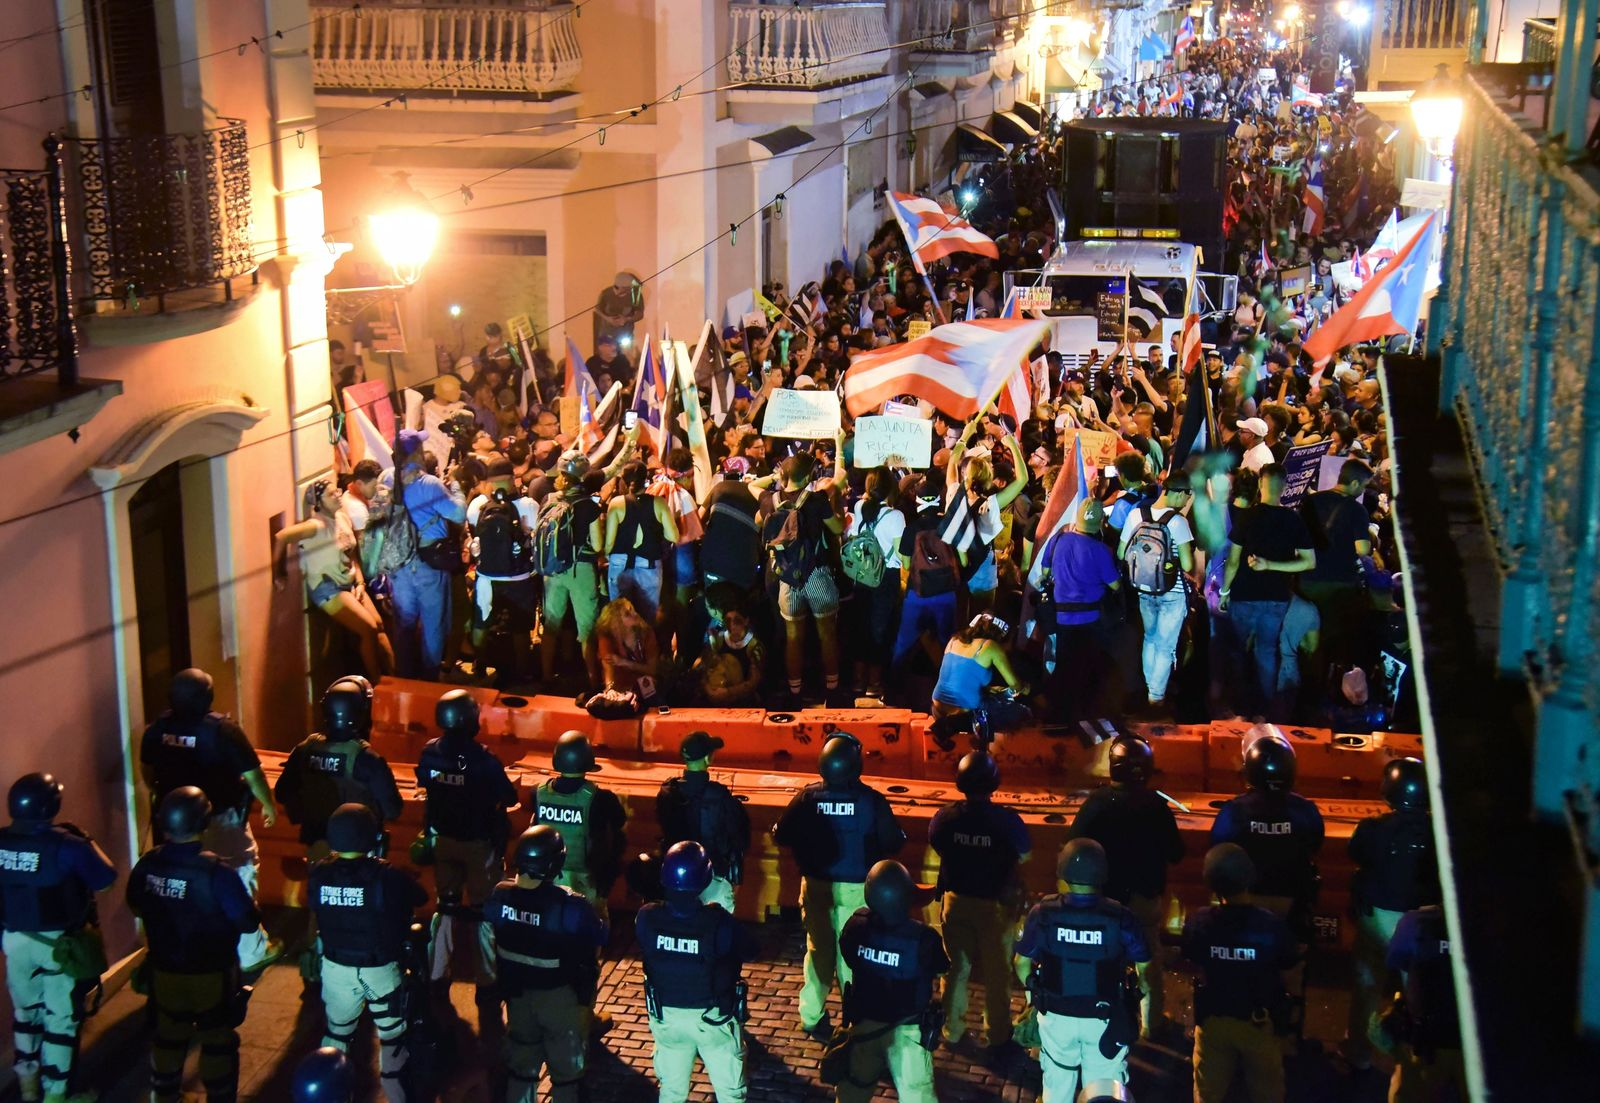 Demonstrators protest against governor Ricardo Rossello, in San Juan, Puerto Rico, Friday, July 19, 2019. Protesters are demanding Rossello step down for his involvement in a private chat in which he used profanities to describe an ex-New York City councilwoman and a federal control board overseeing the island's finance. (AP Photo/Carlos Giusti)